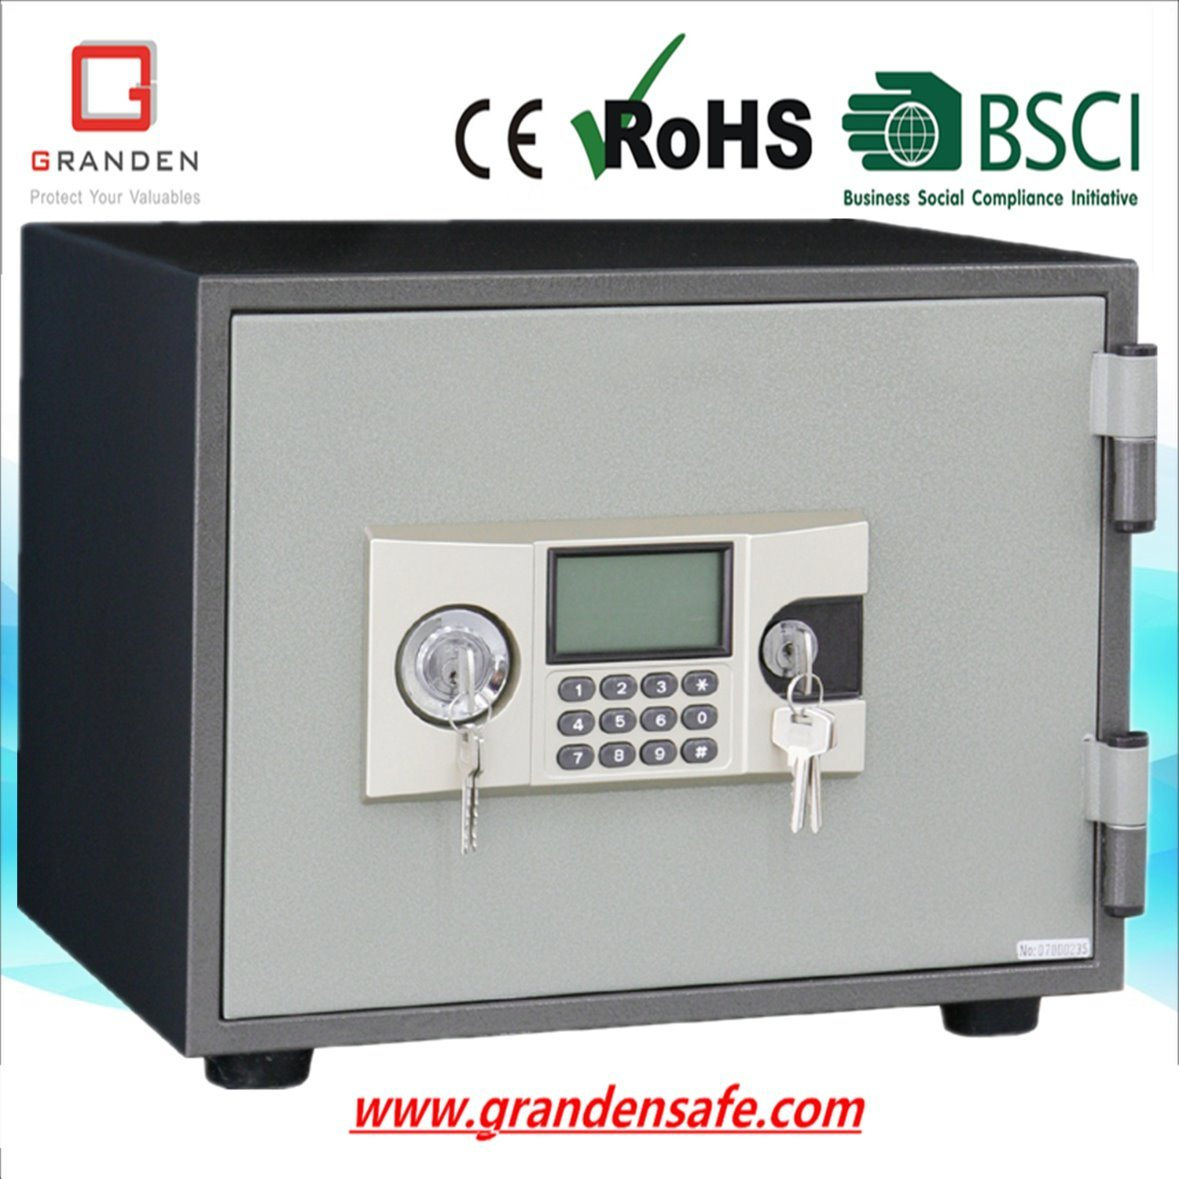 Fireproof Safe for Home and Office (FP-305E) , Solid Steel